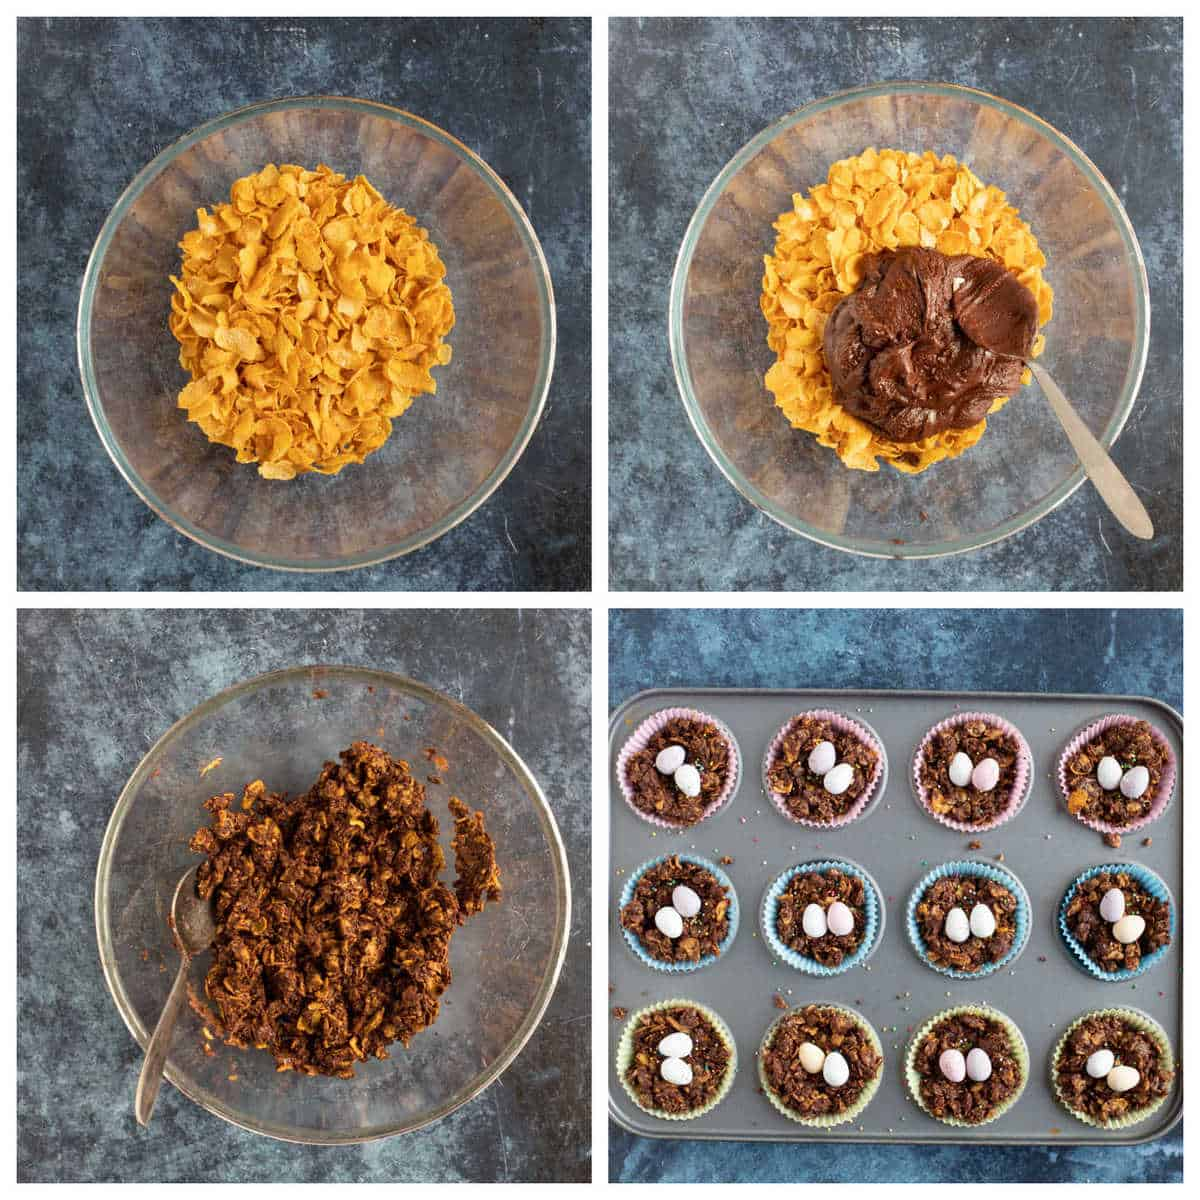 Step by step photo instructions for making the cornflake cakes.